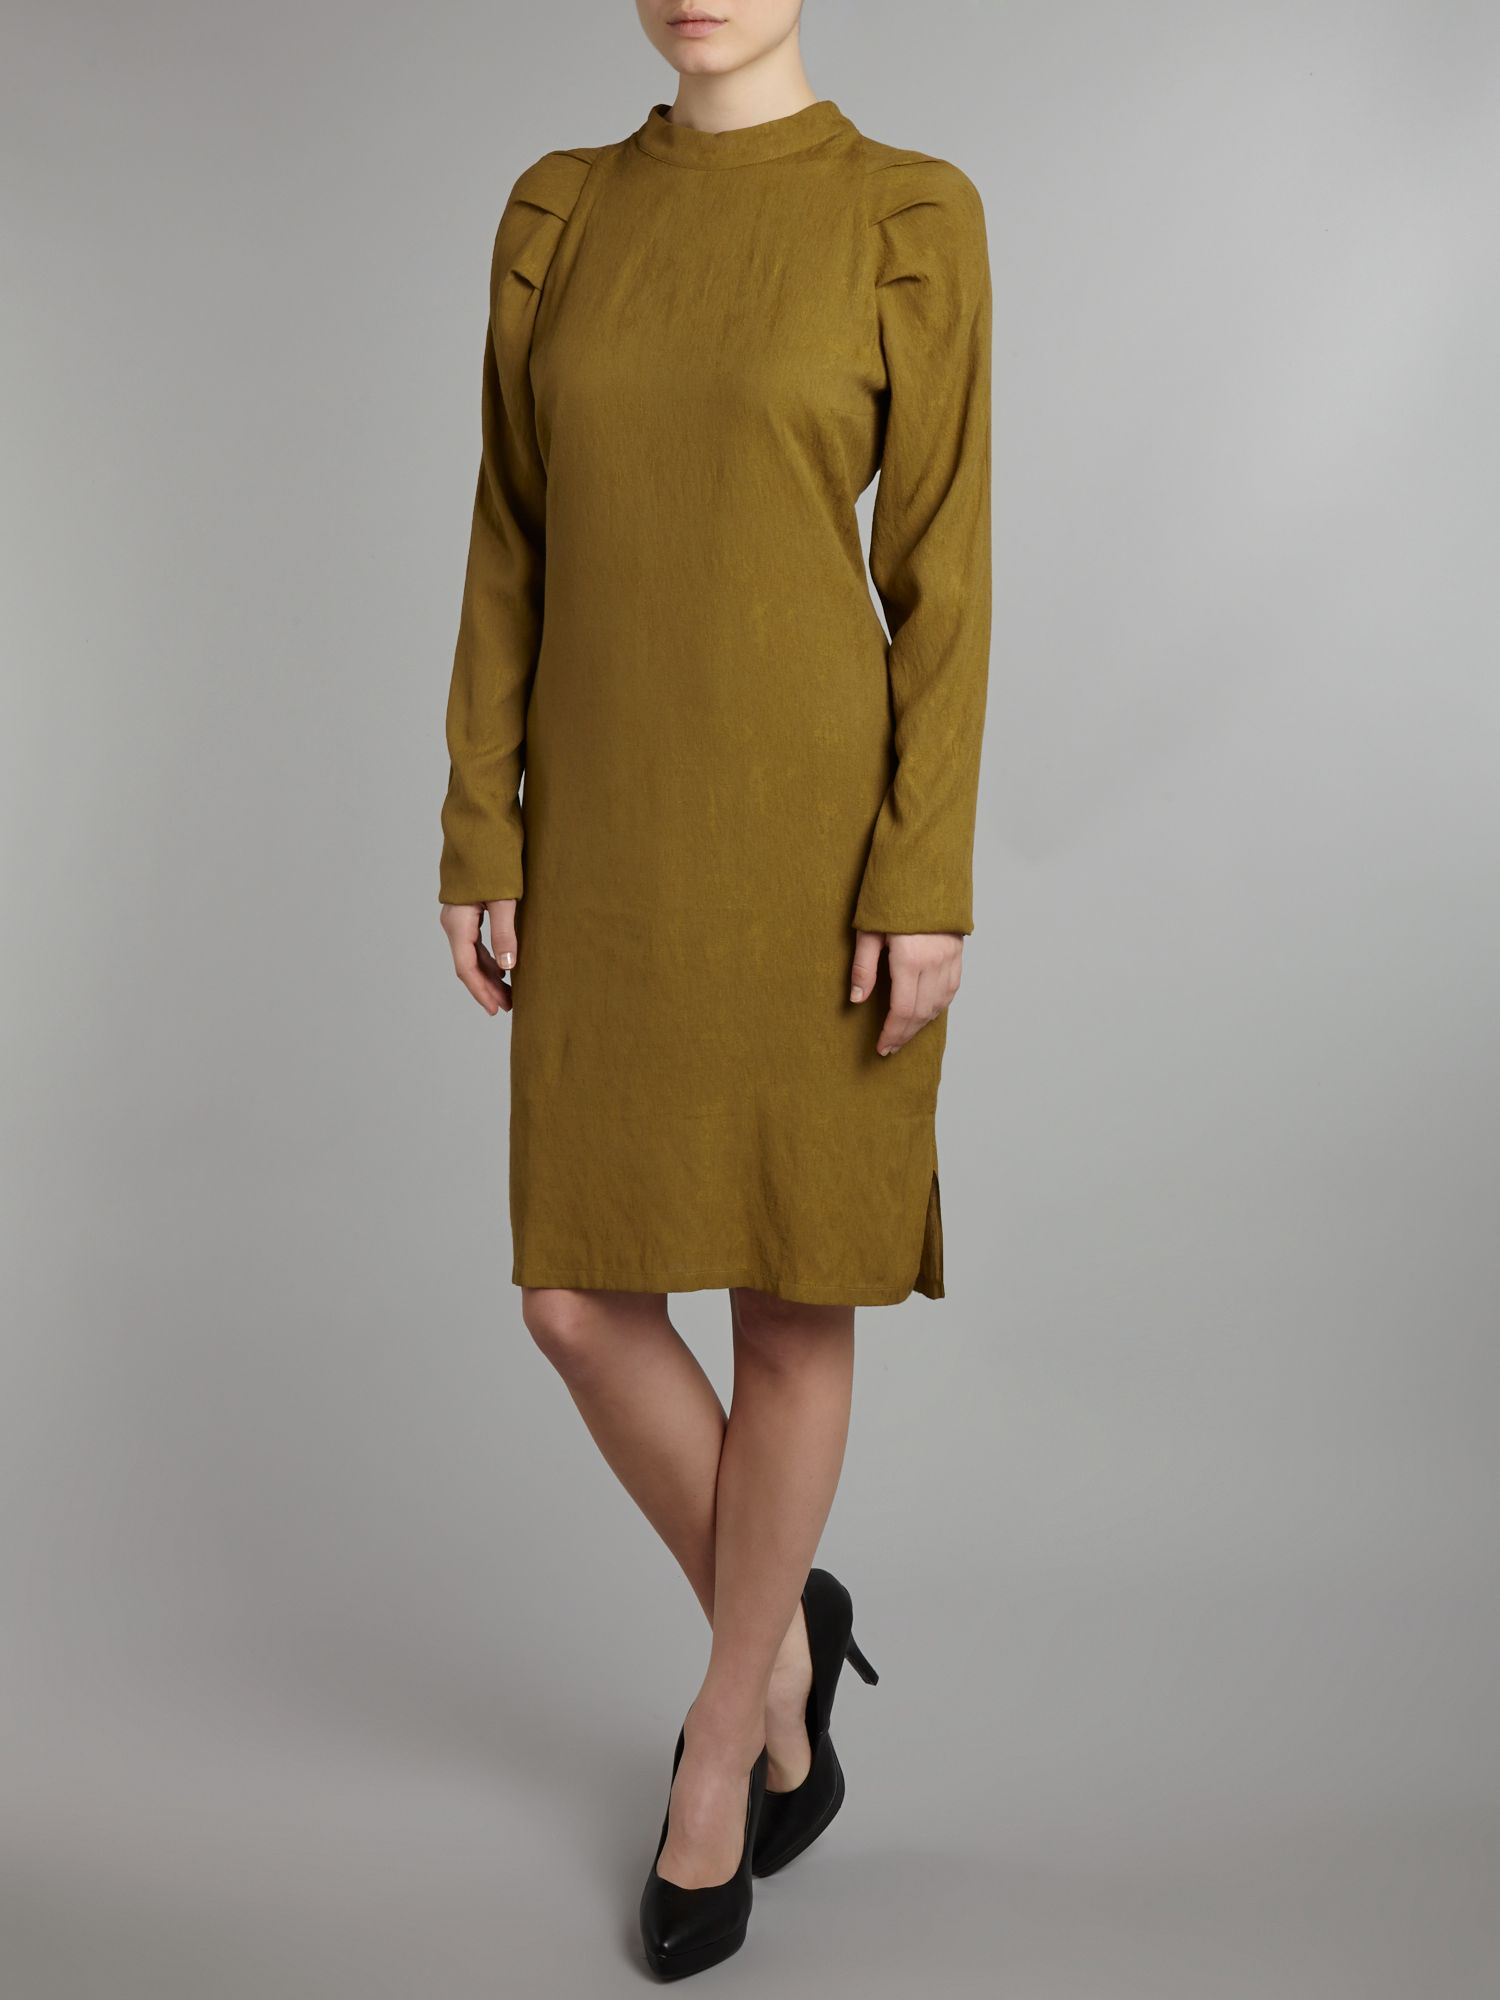 Pensa high neck raglan sleeve dress